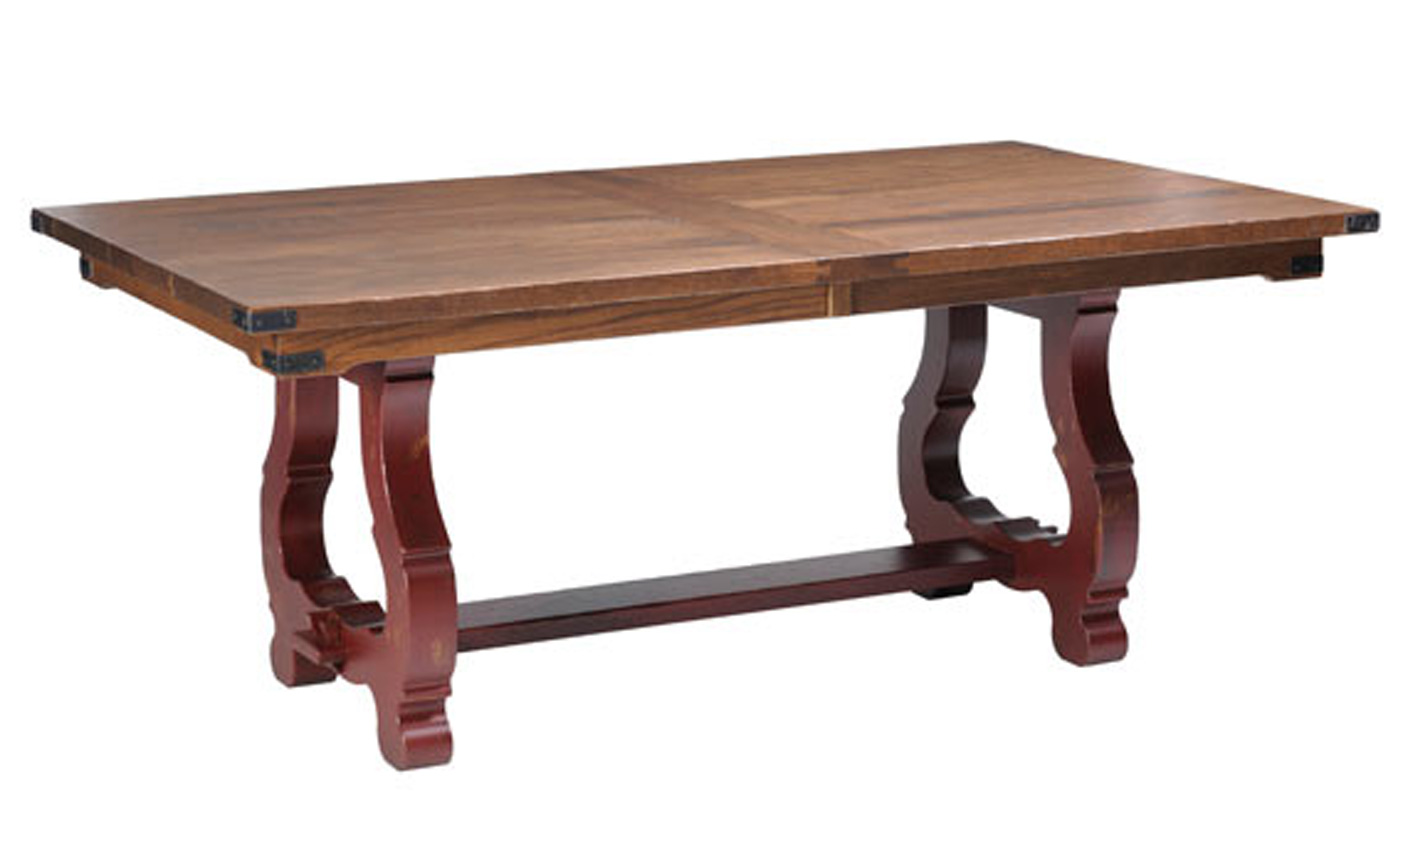 Luxembourg Table Amish Furniture Designed